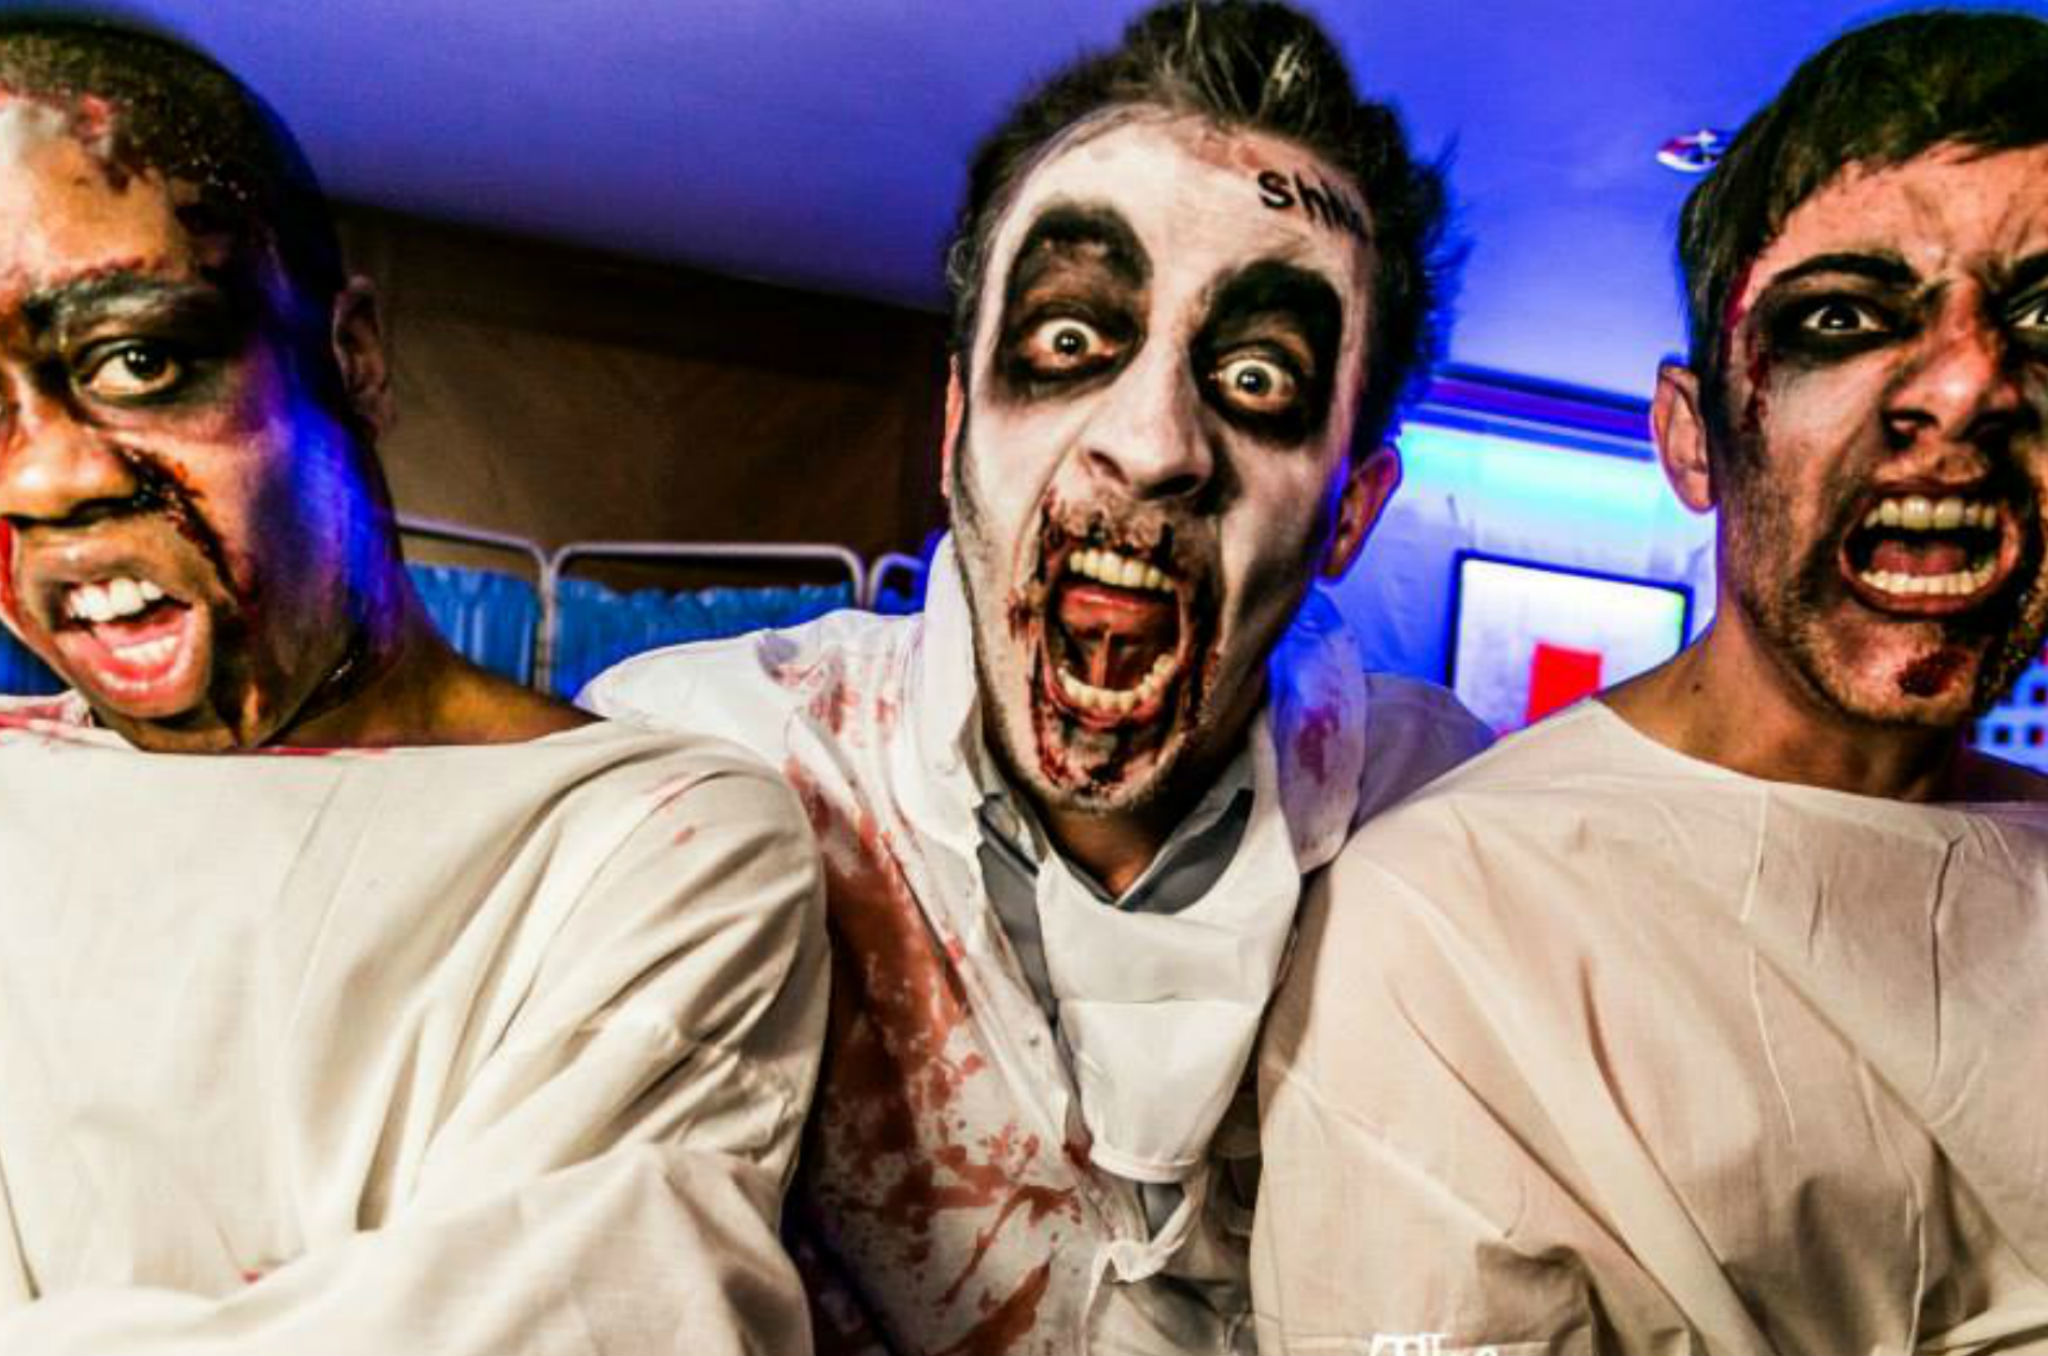 Top ten Halloween events in London